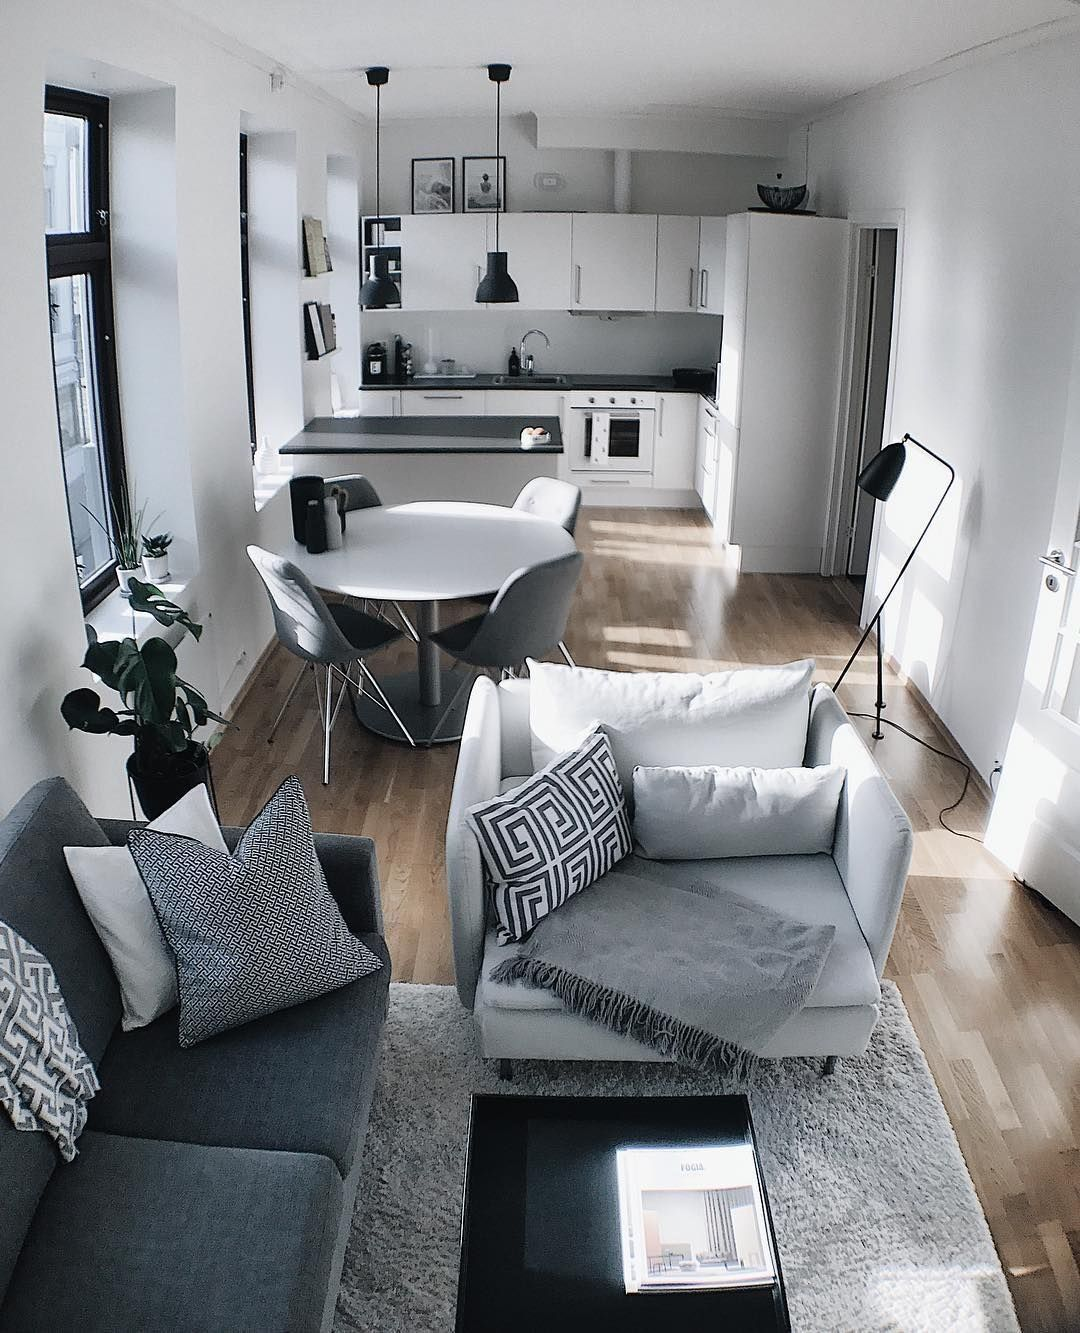 apartment decorating ideas on  budget for beautiful space apartmentdecoratingideas also this is how an interior designer makes look expensive any rh pinterest